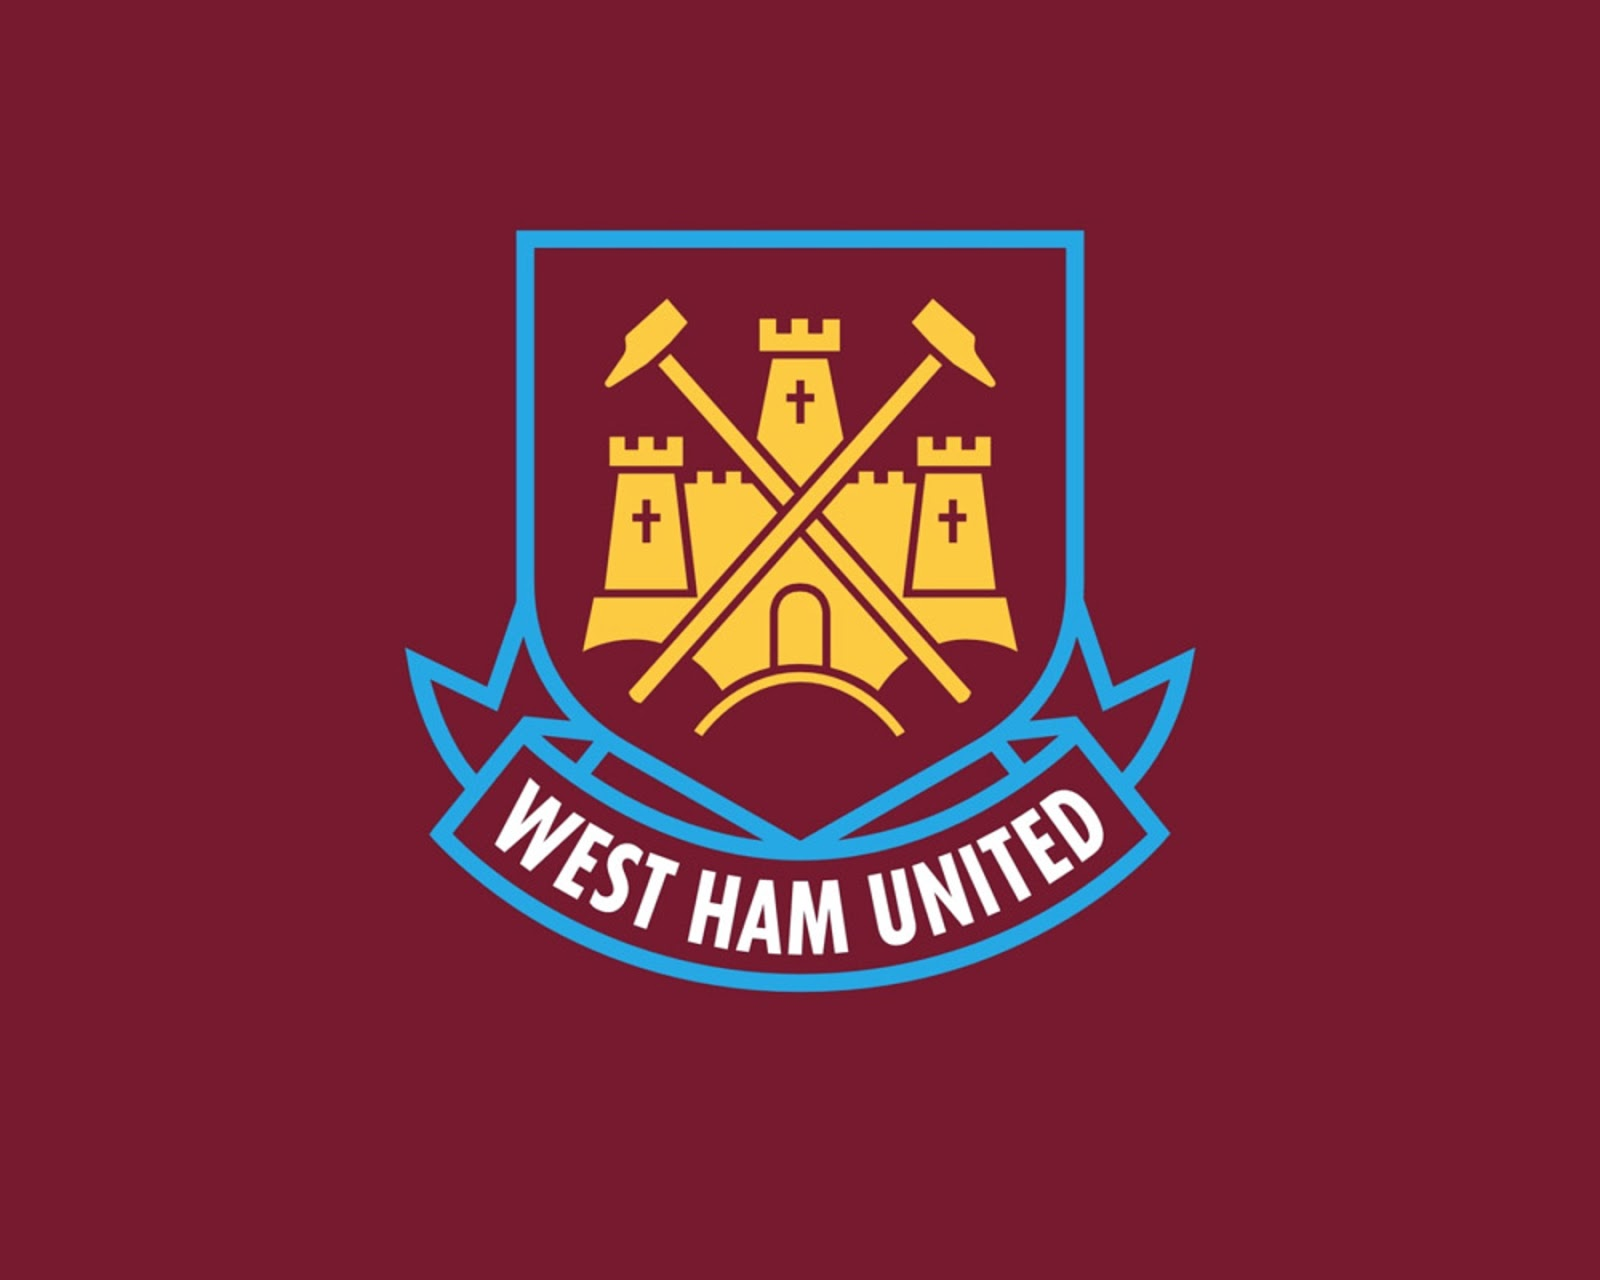 World Cup: West Ham United Logo Wallpapers - Jan